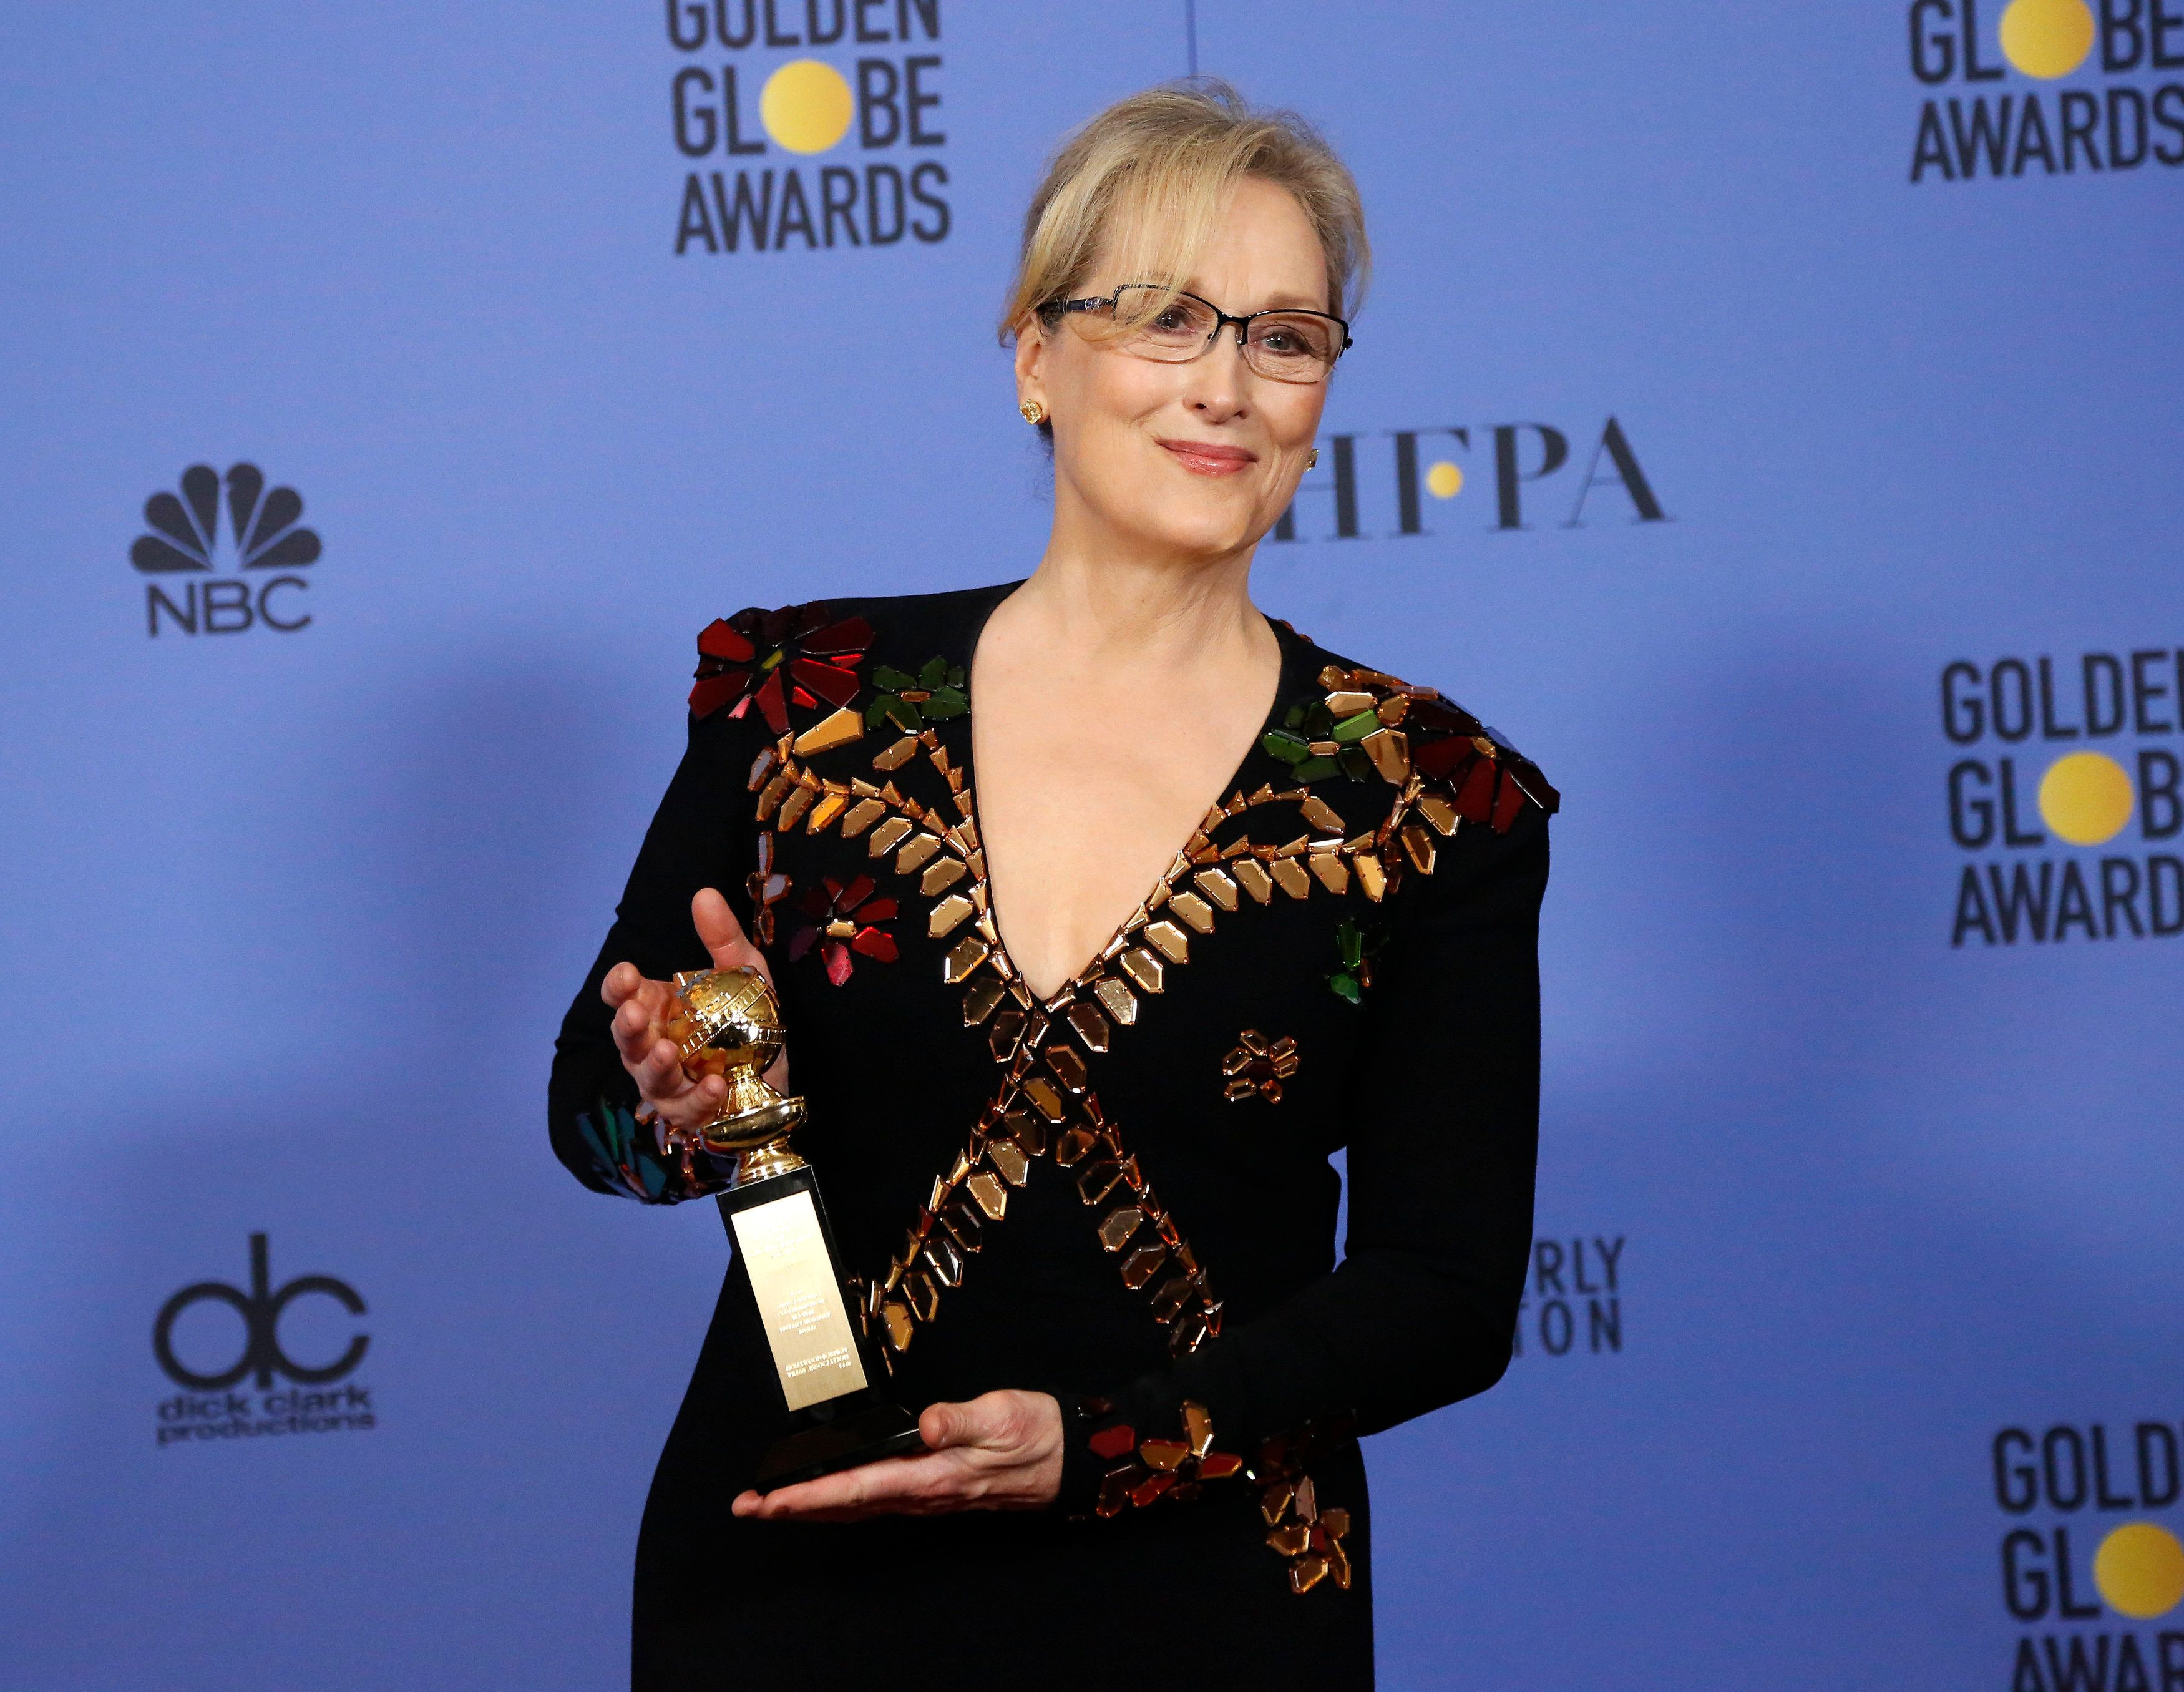 Meryl Streep holds the Cecil B. DeMille Award during the 74th Annual Golden Globe Awards in Beverly Hills, California, Jan. 8, 2017.